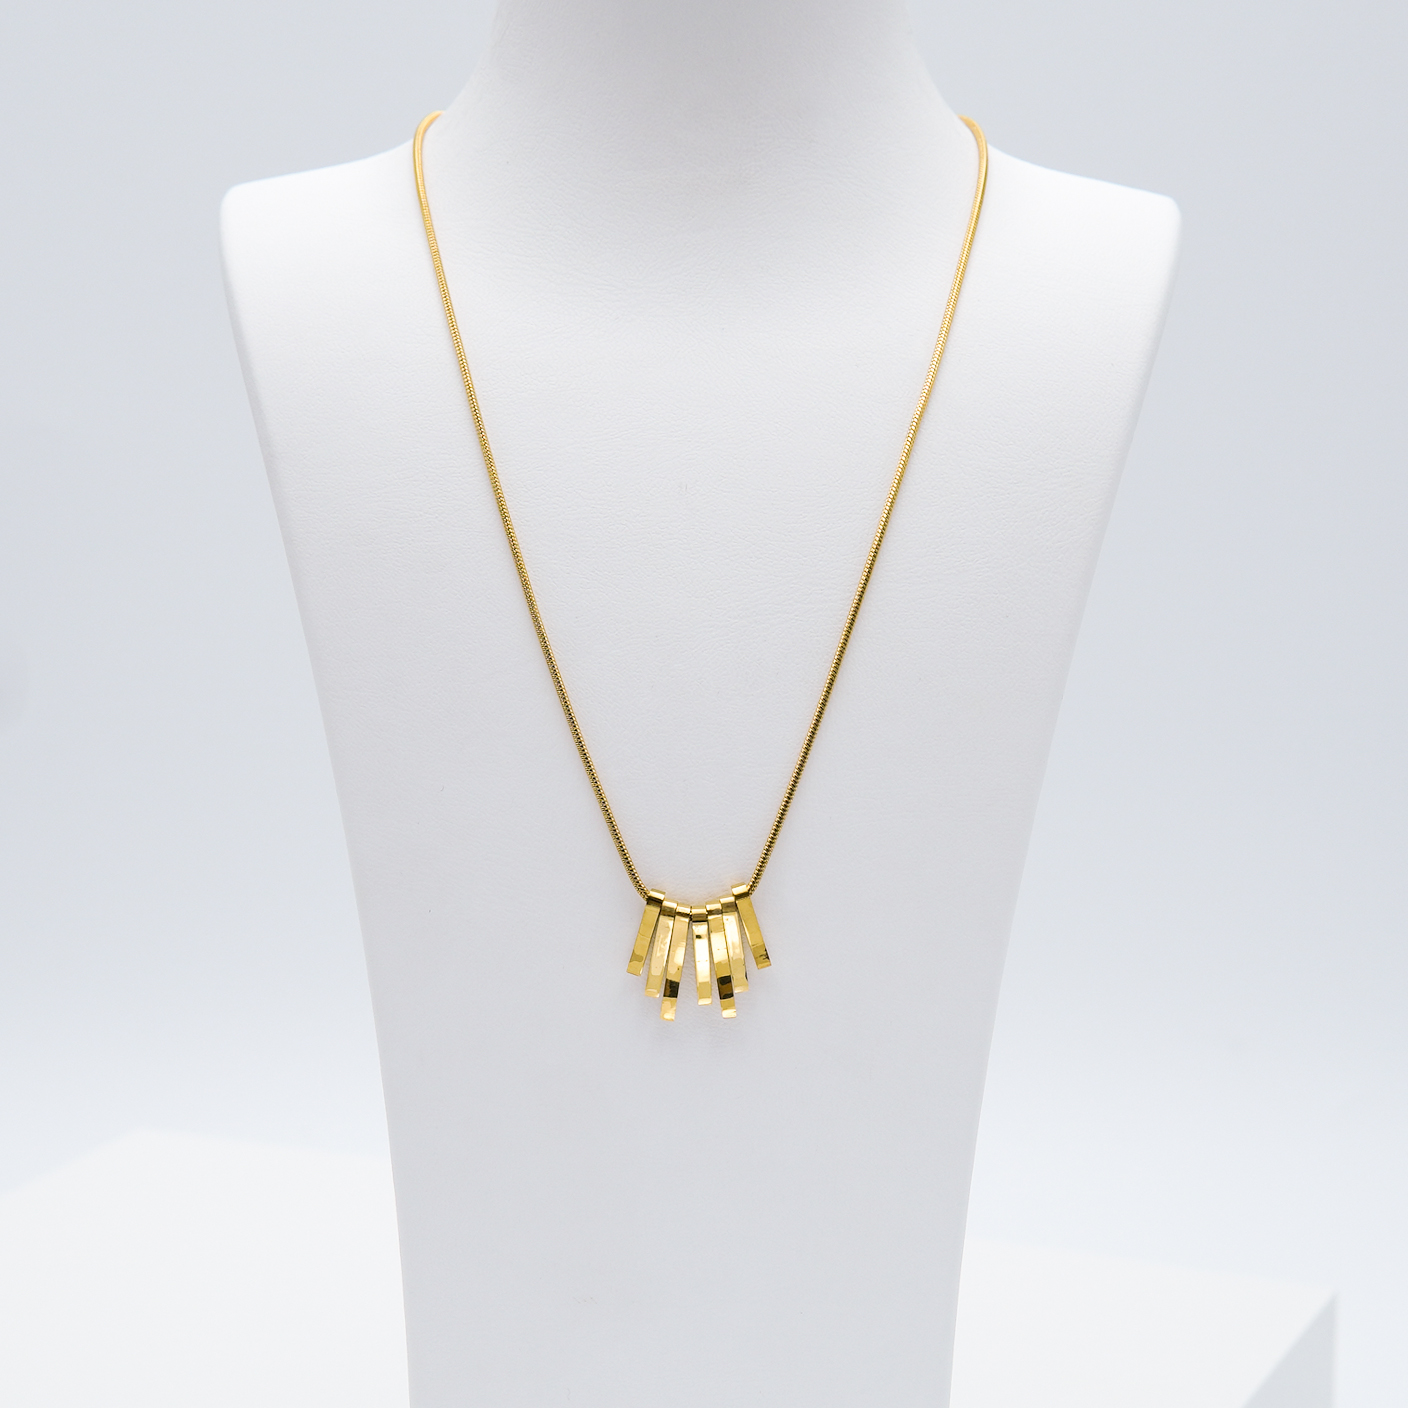 3- Fashionista Dance Edition Halsband Modern and trendy Necklace and women jewelry and accessories from SWEVALI fashion Sweden